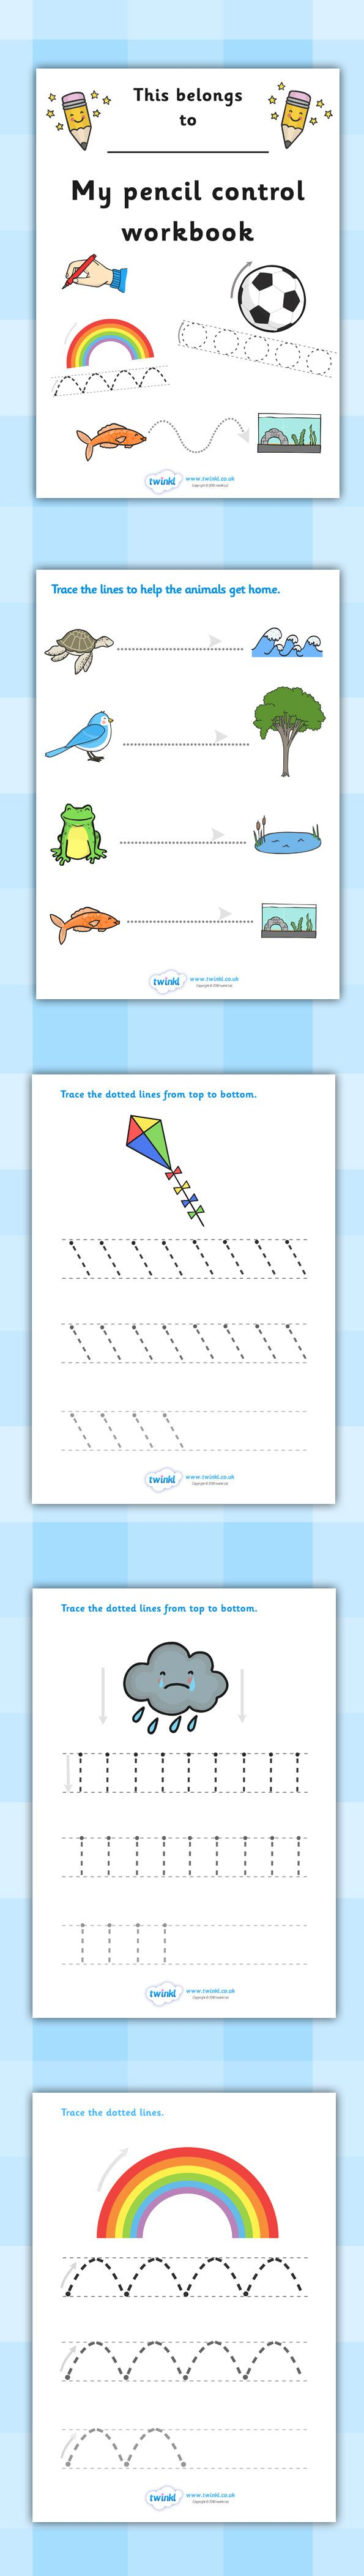 Twinkl Resources >> Line Handwriting Worksheets >> Printable resources for Primary, EYFS, KS1 and SEN.  Thousands of classroom displays and teaching aids! Literacy, English, Handwriting, Pencil Control